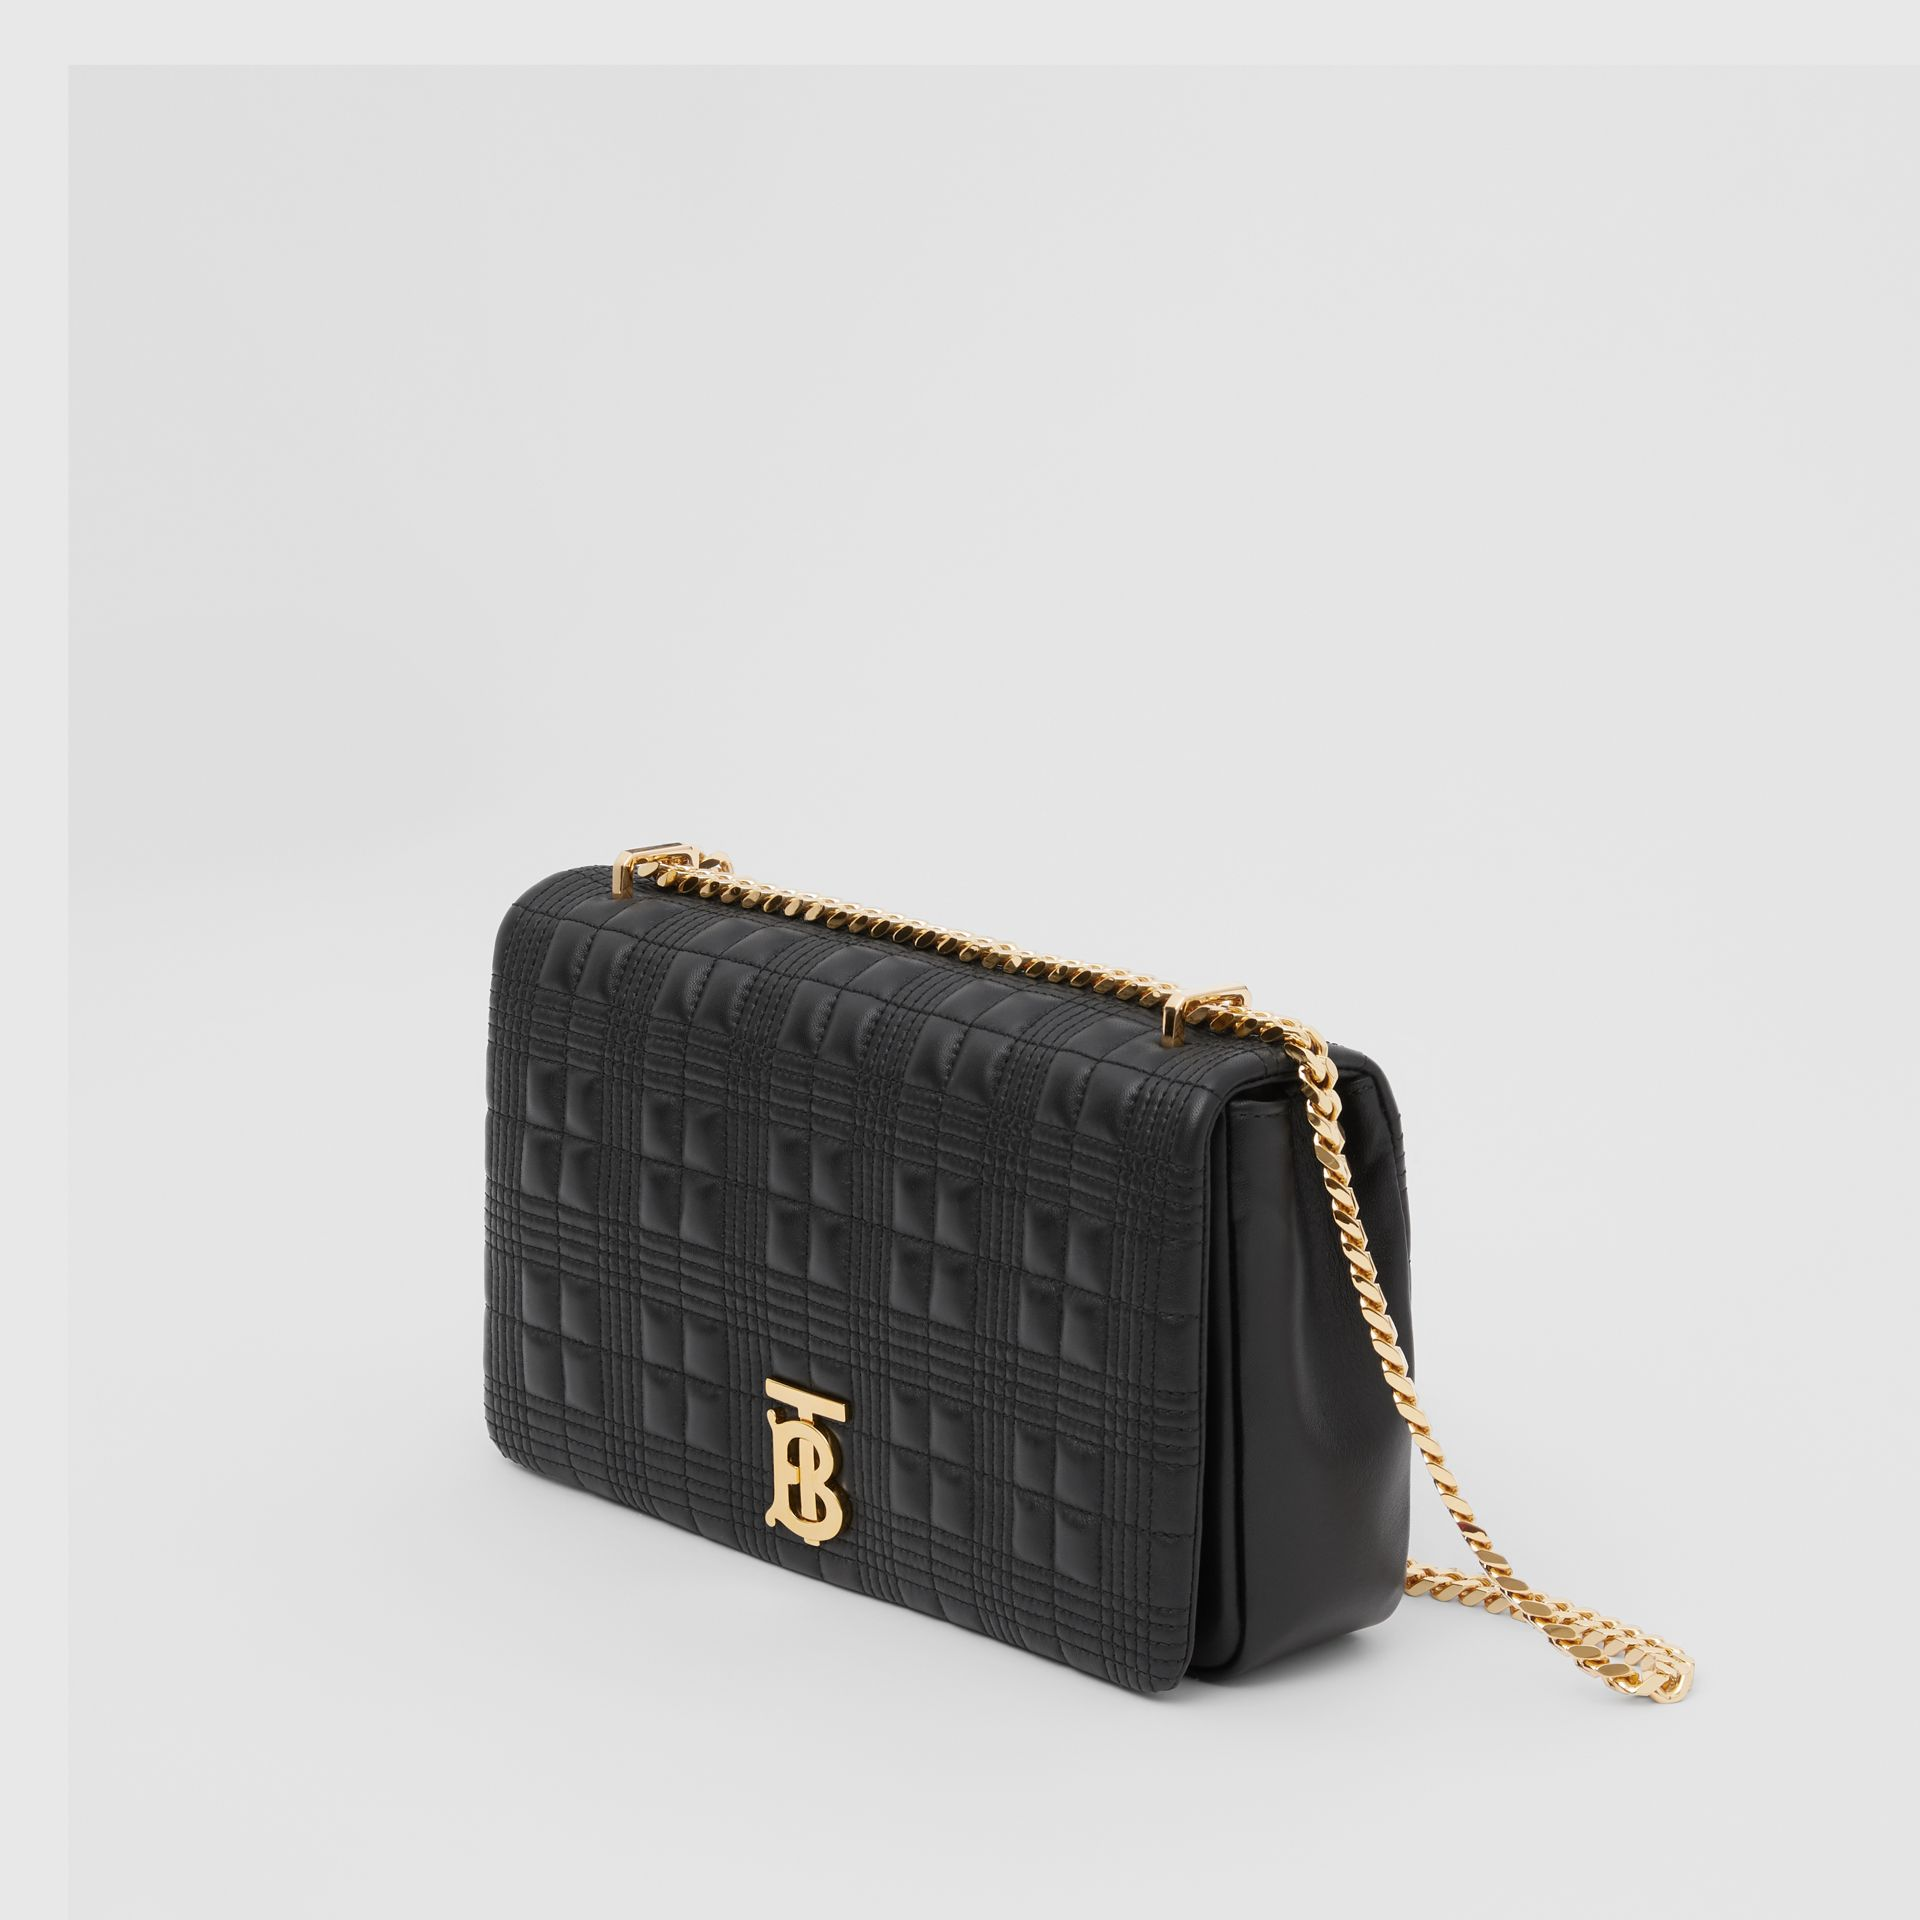 Medium Quilted Lambskin Lola Bag in Black - Women | Burberry Australia - gallery image 2